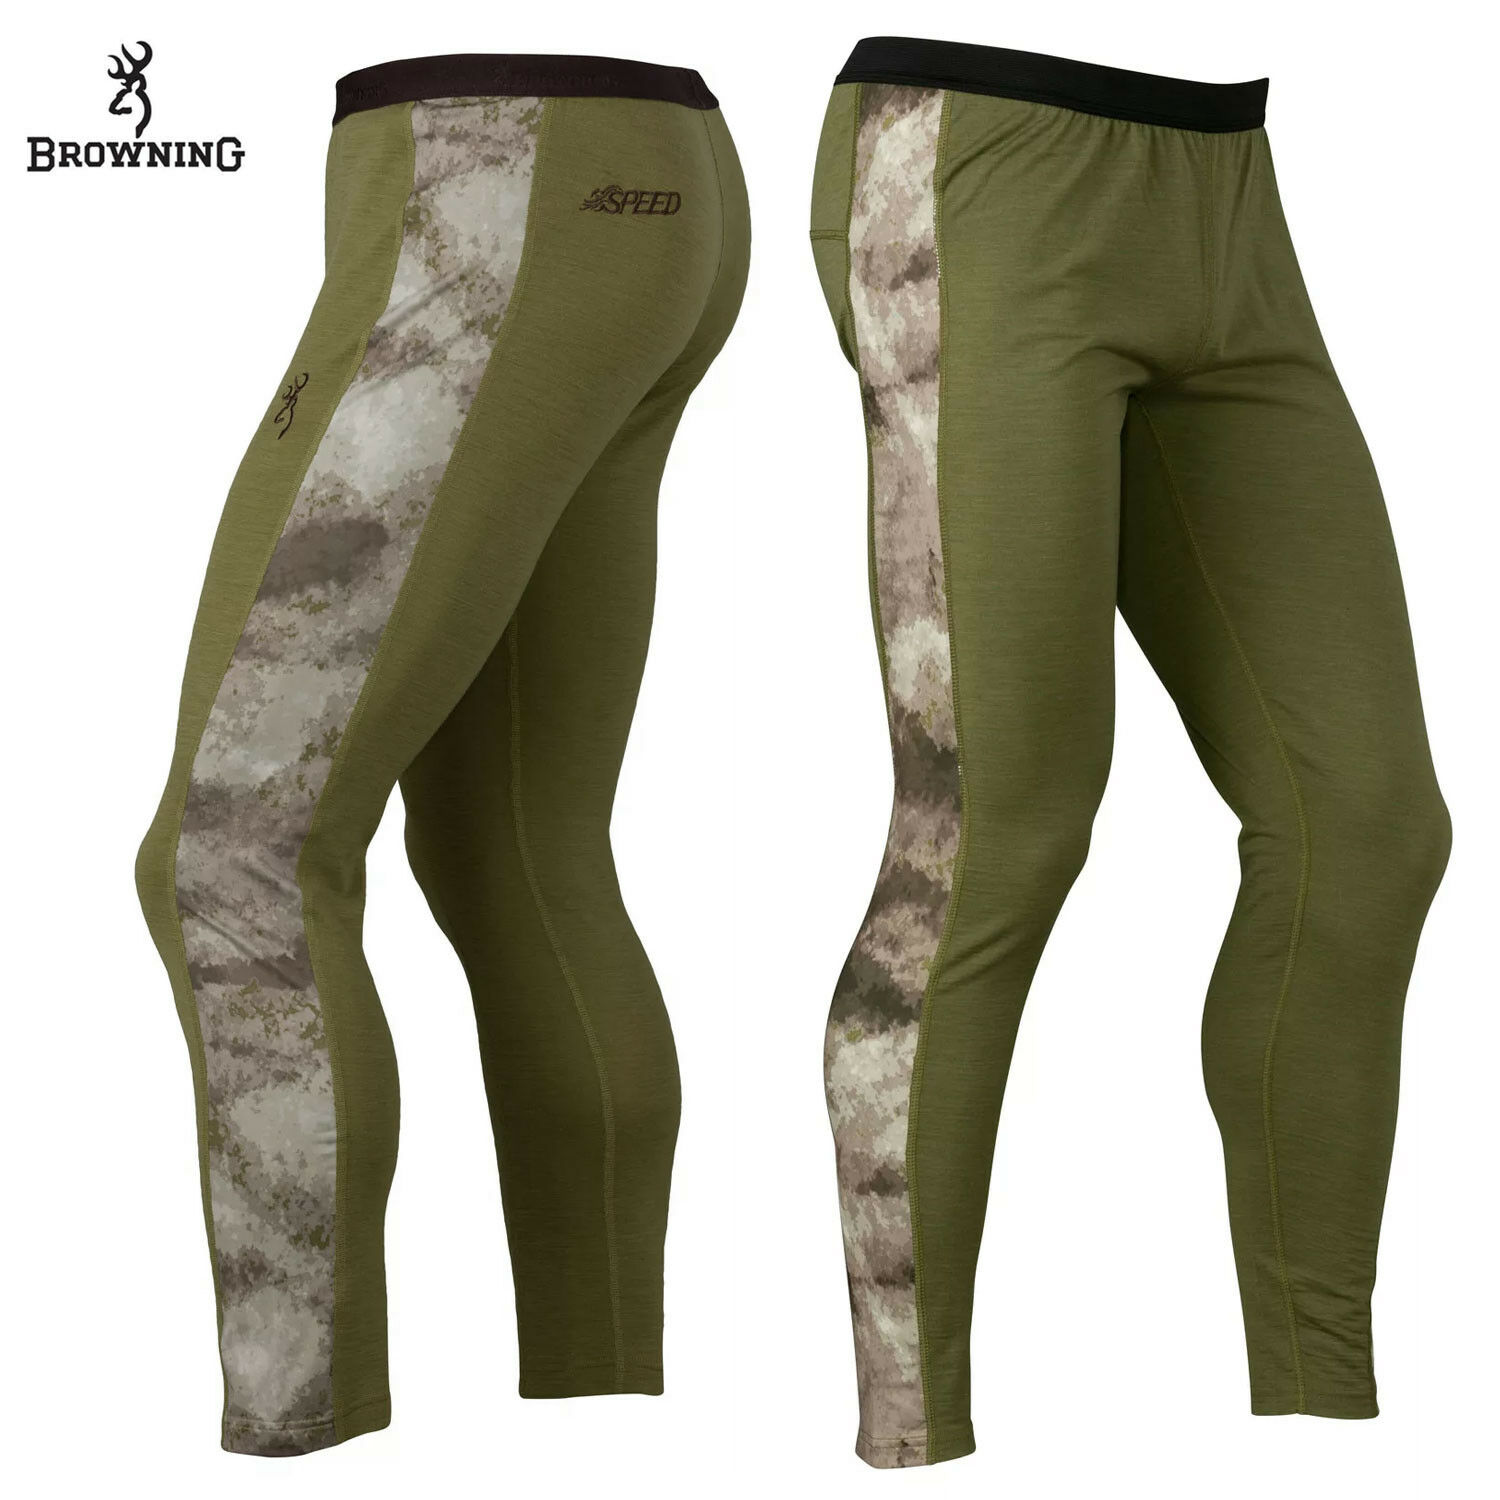 Browning Hell's Canyon Speed MHS Baselayer Pant  (L)- ATACS AU  the best online store offer